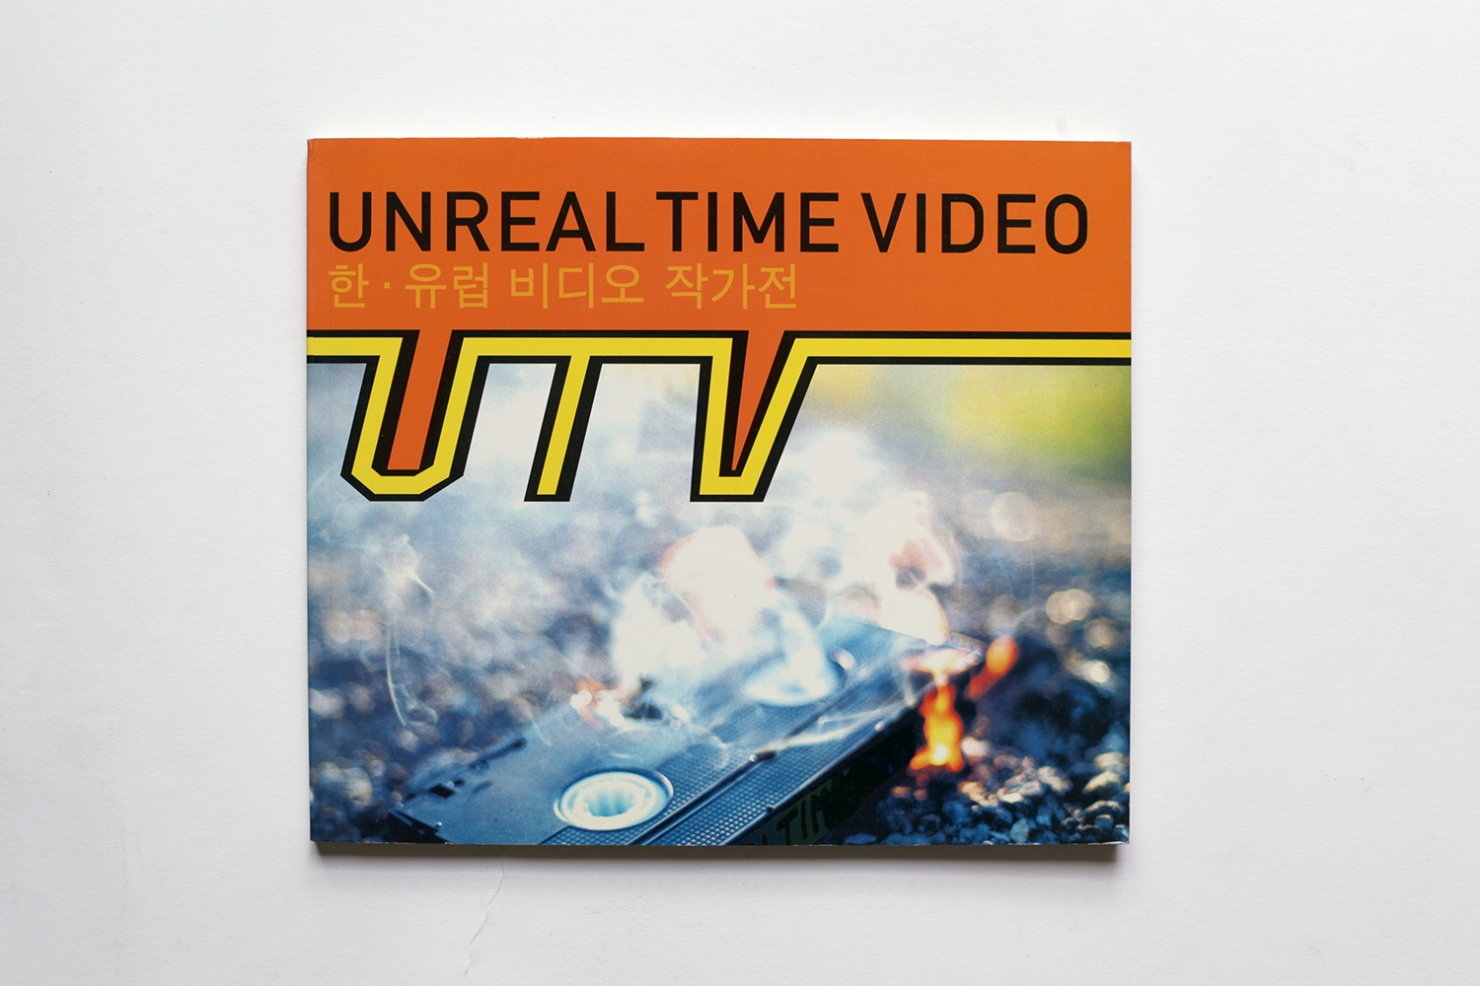 unreal-time-video-1